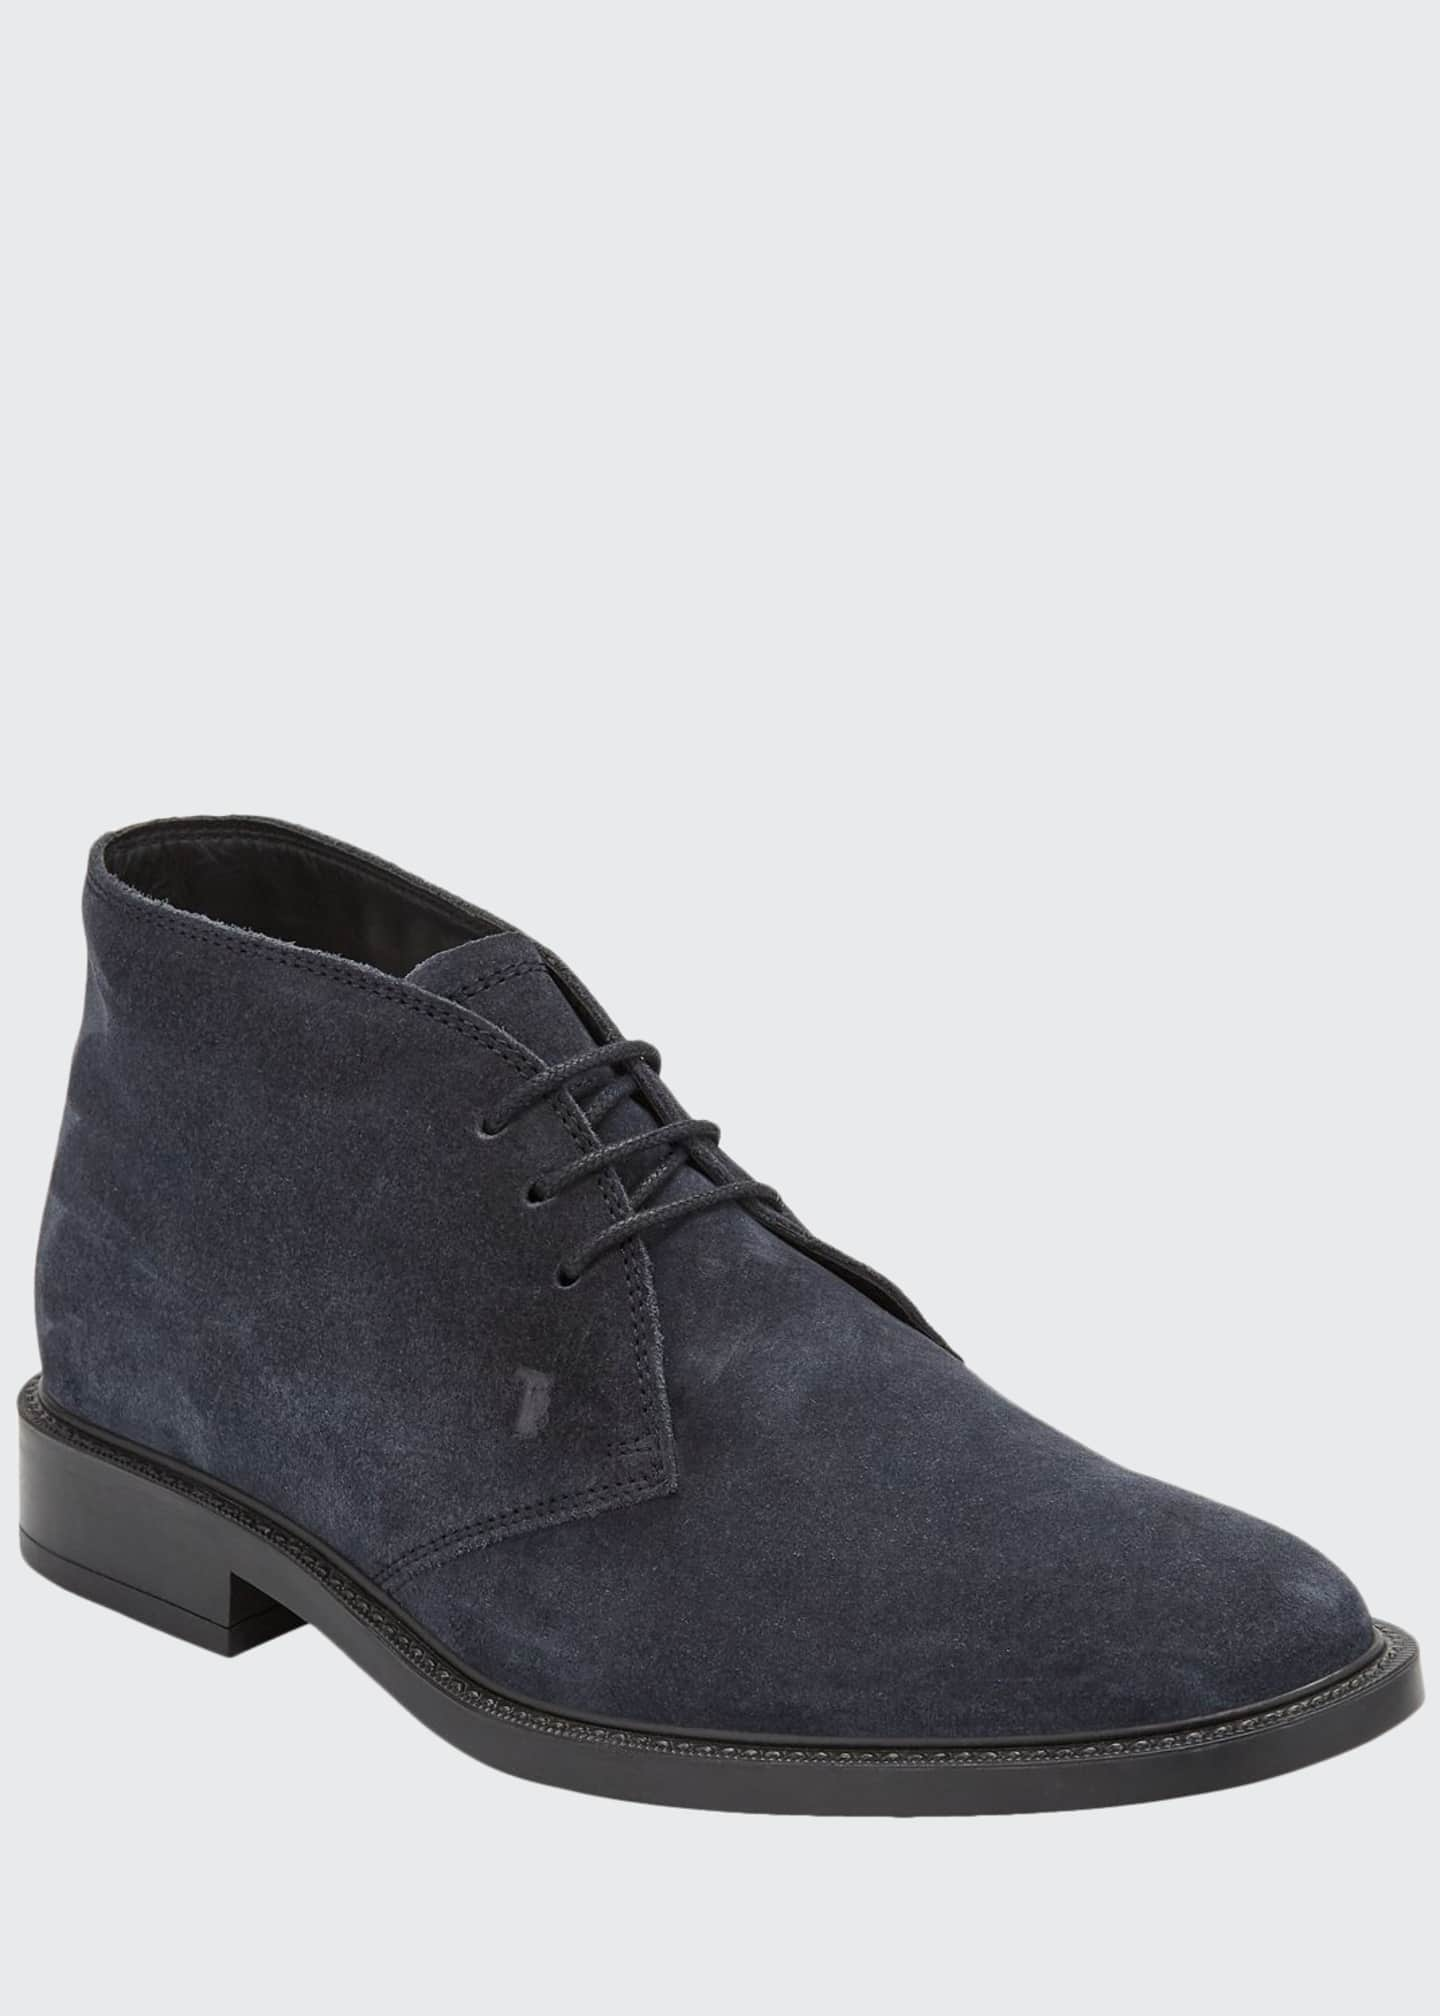 Image 1 of 3: Men's Polacco Suede Chukka Boots